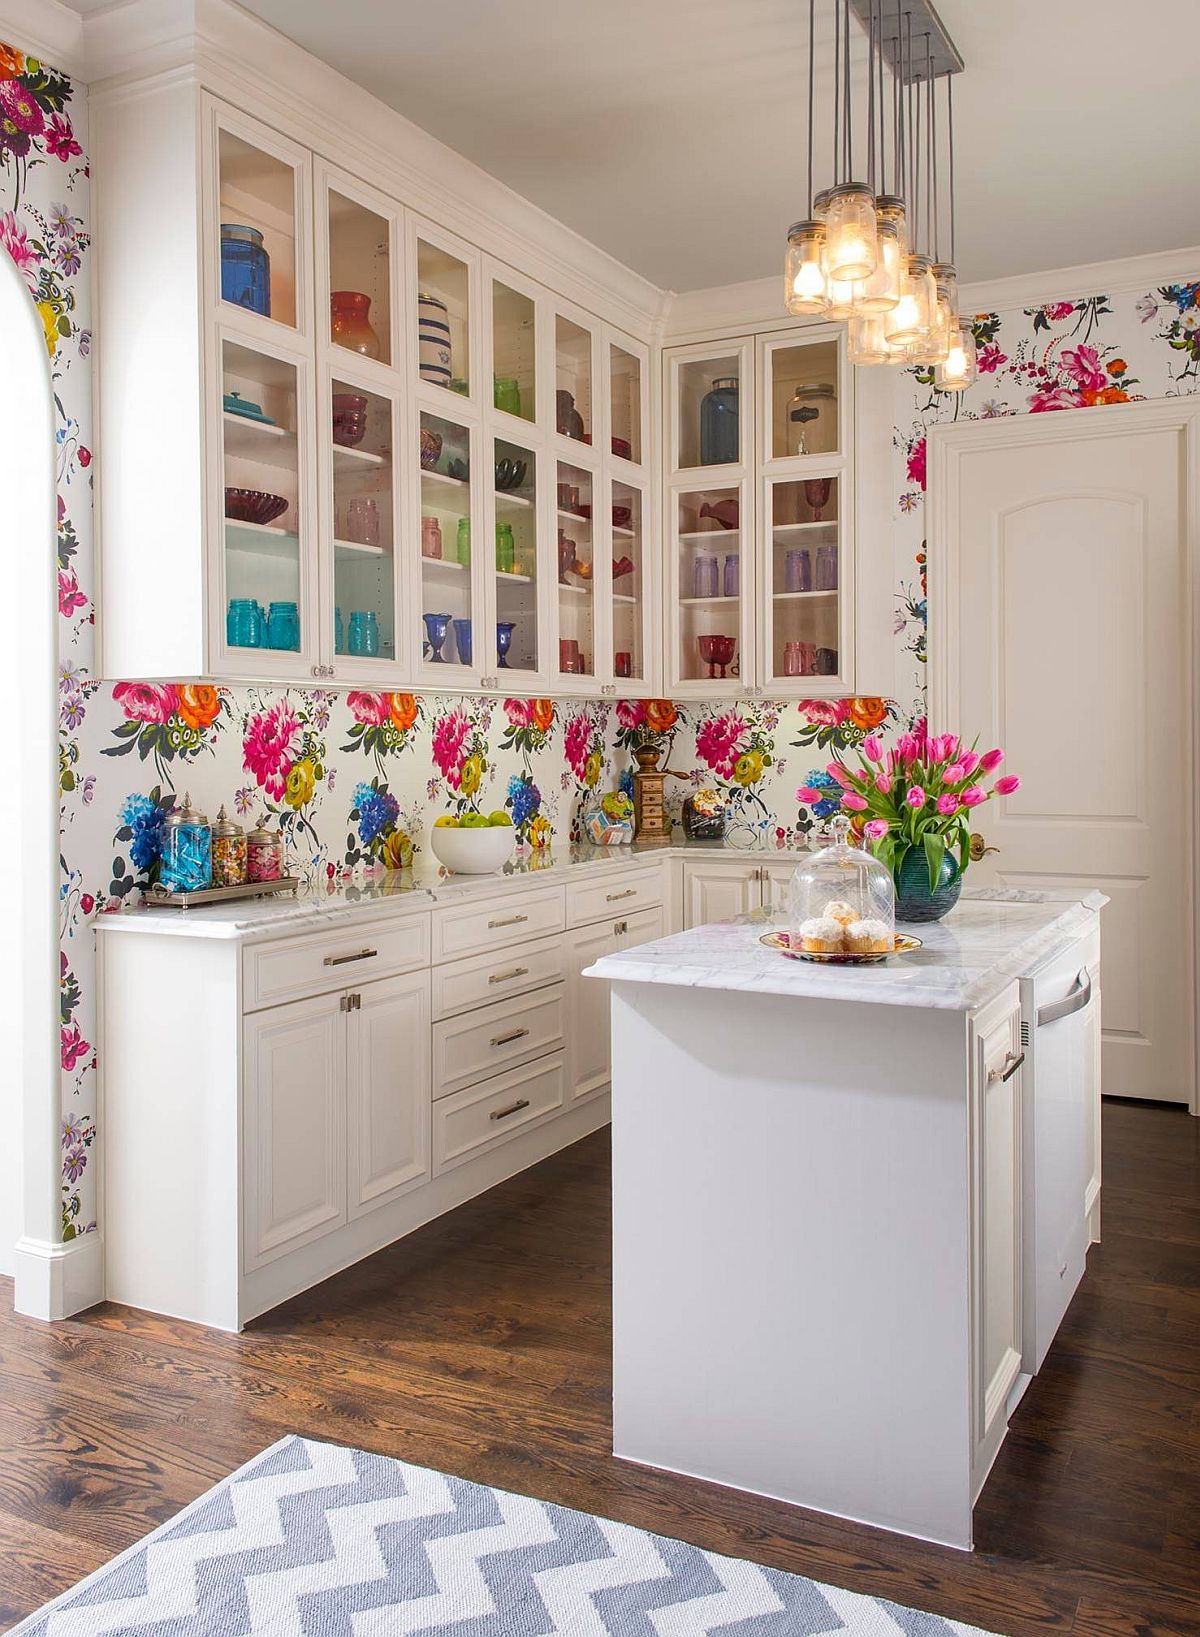 Flower-filled kitchen is not a look for everyone!